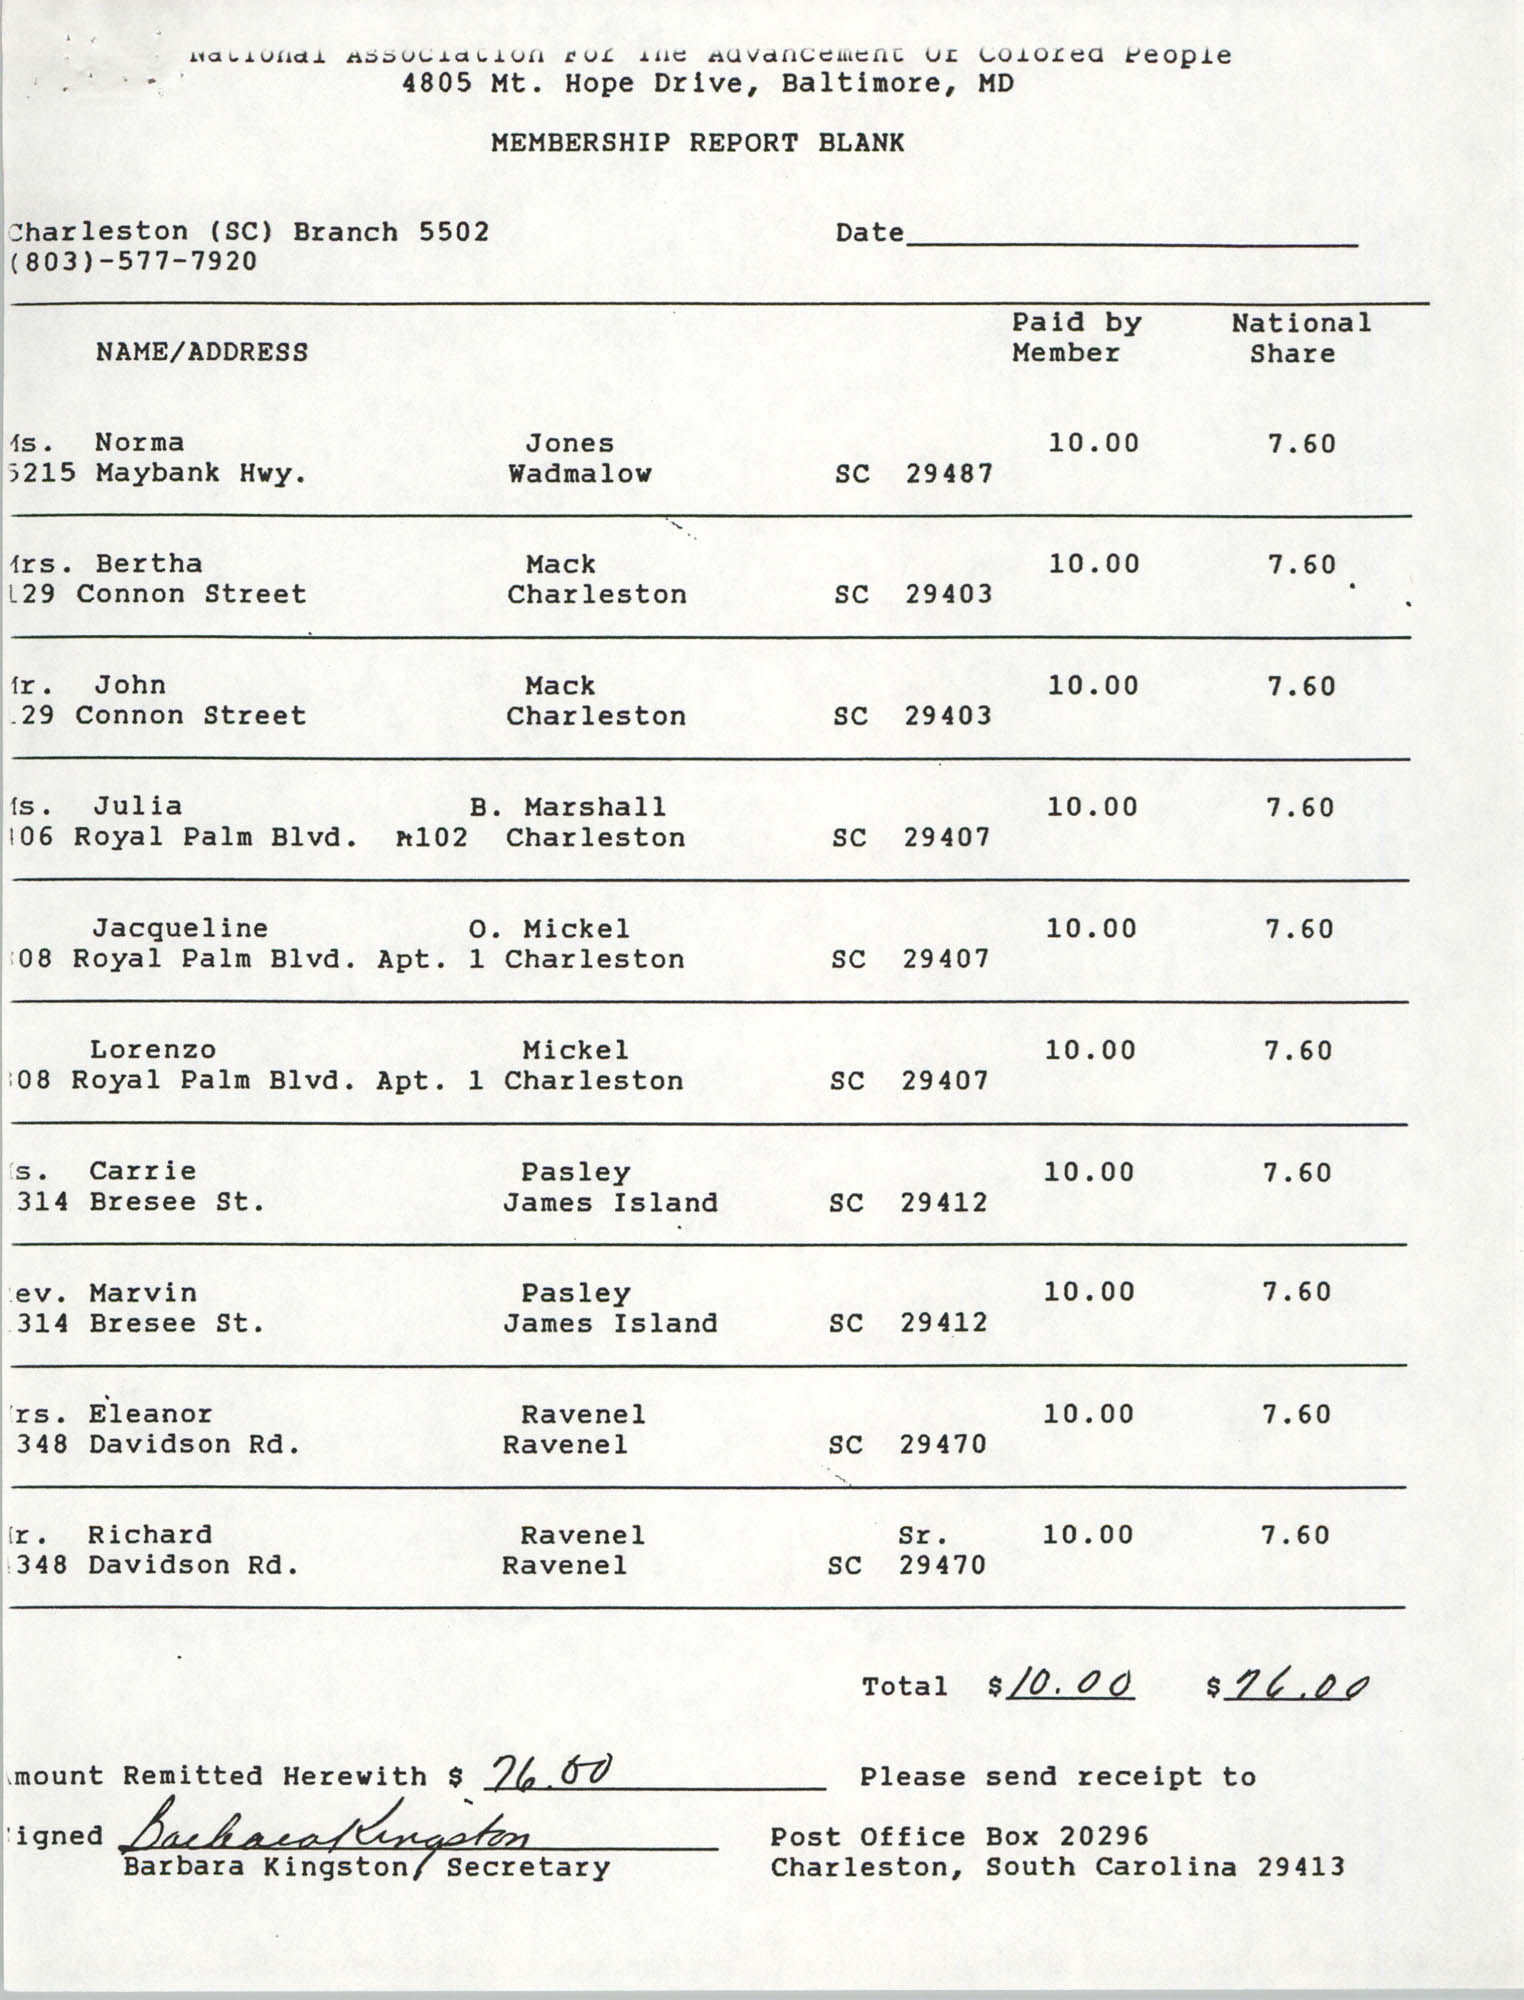 Membership Report Blank, Charleston Branch of the NAACP, Barbara Kingston